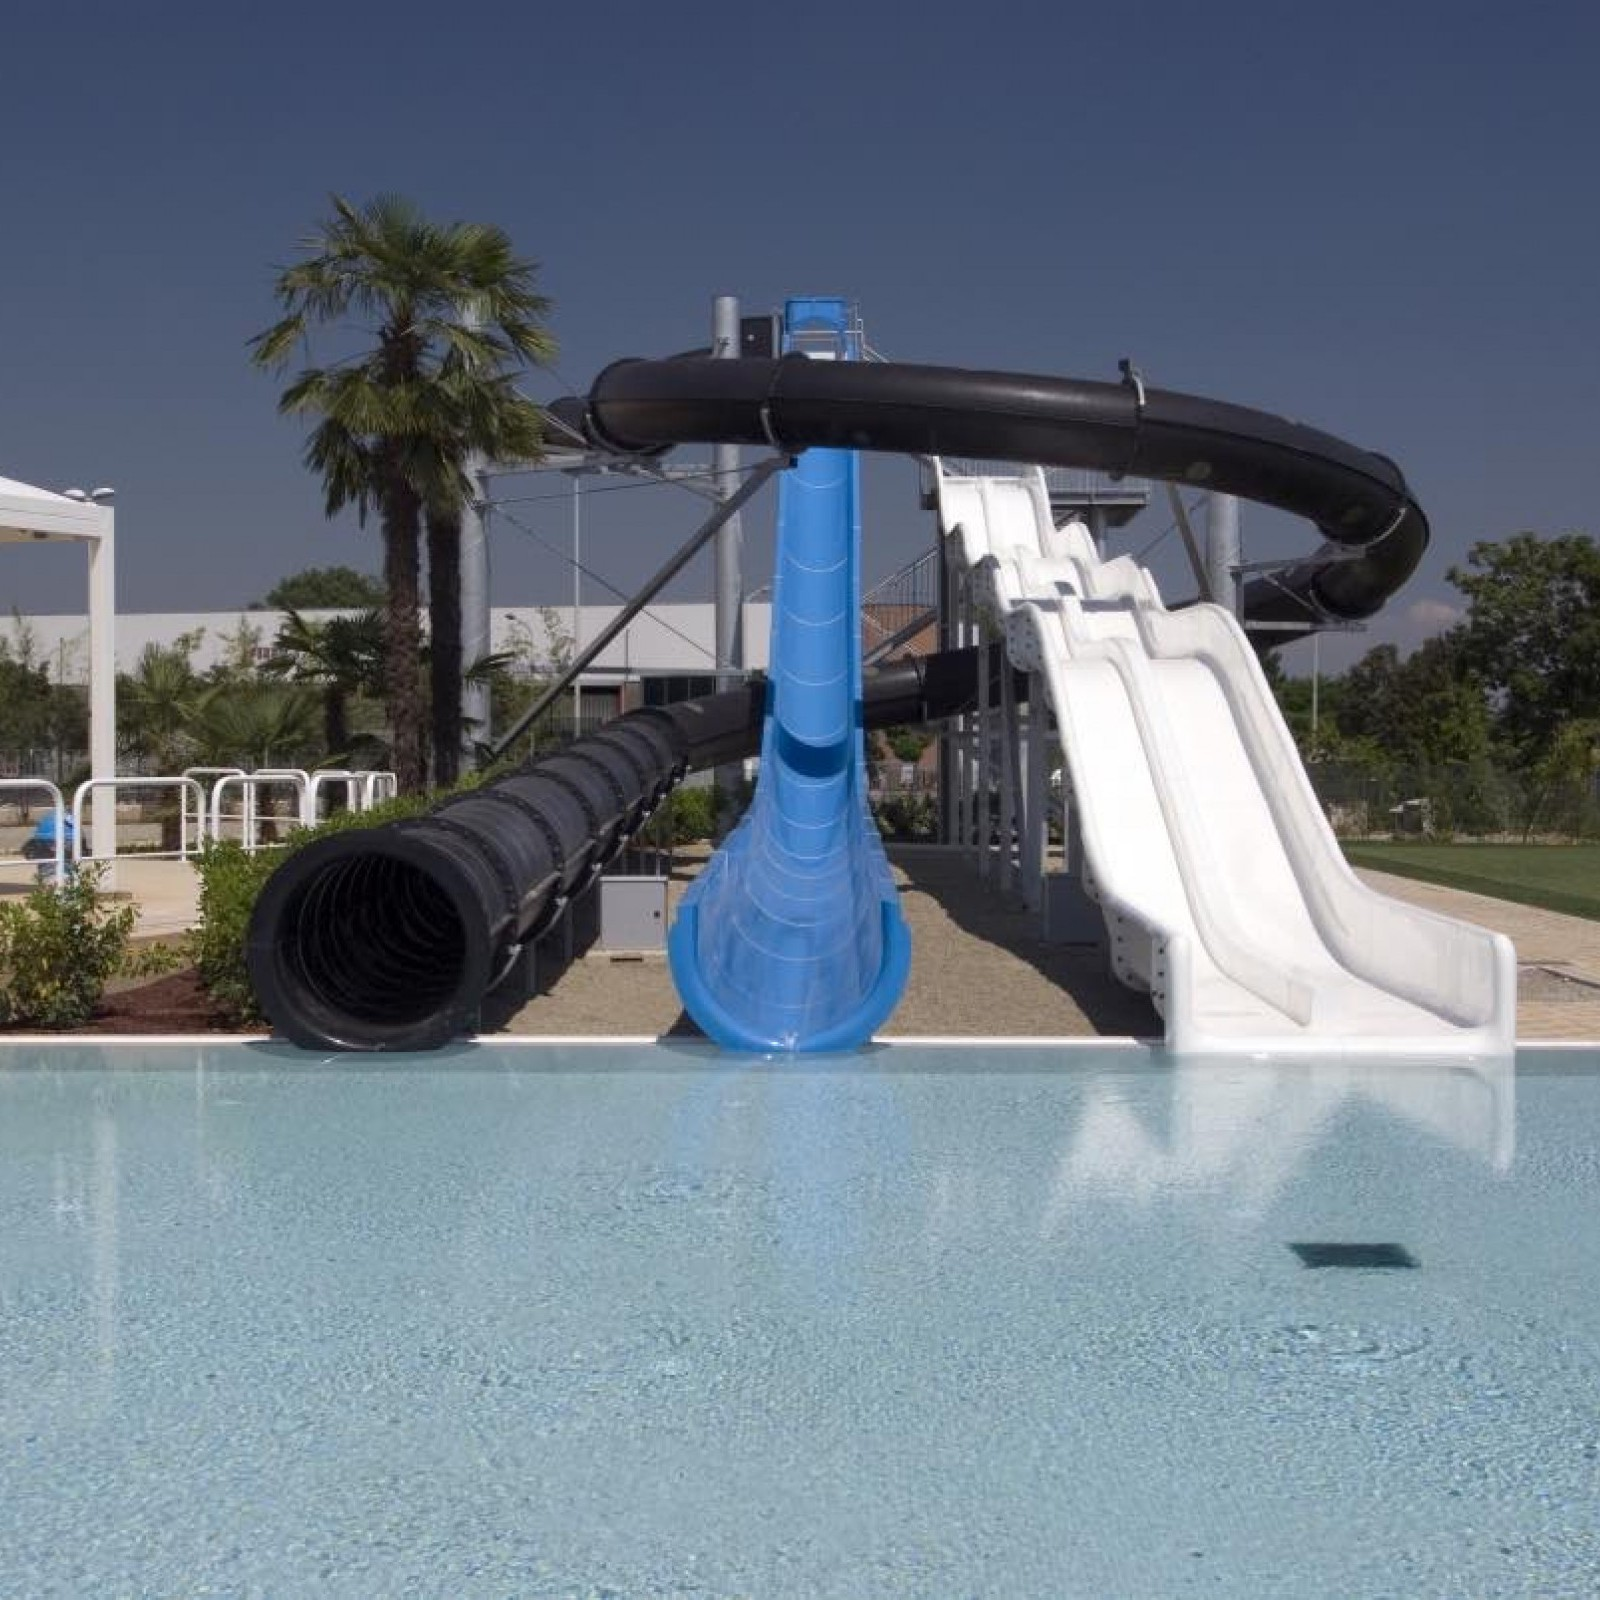 Selling Waterslides For Parks